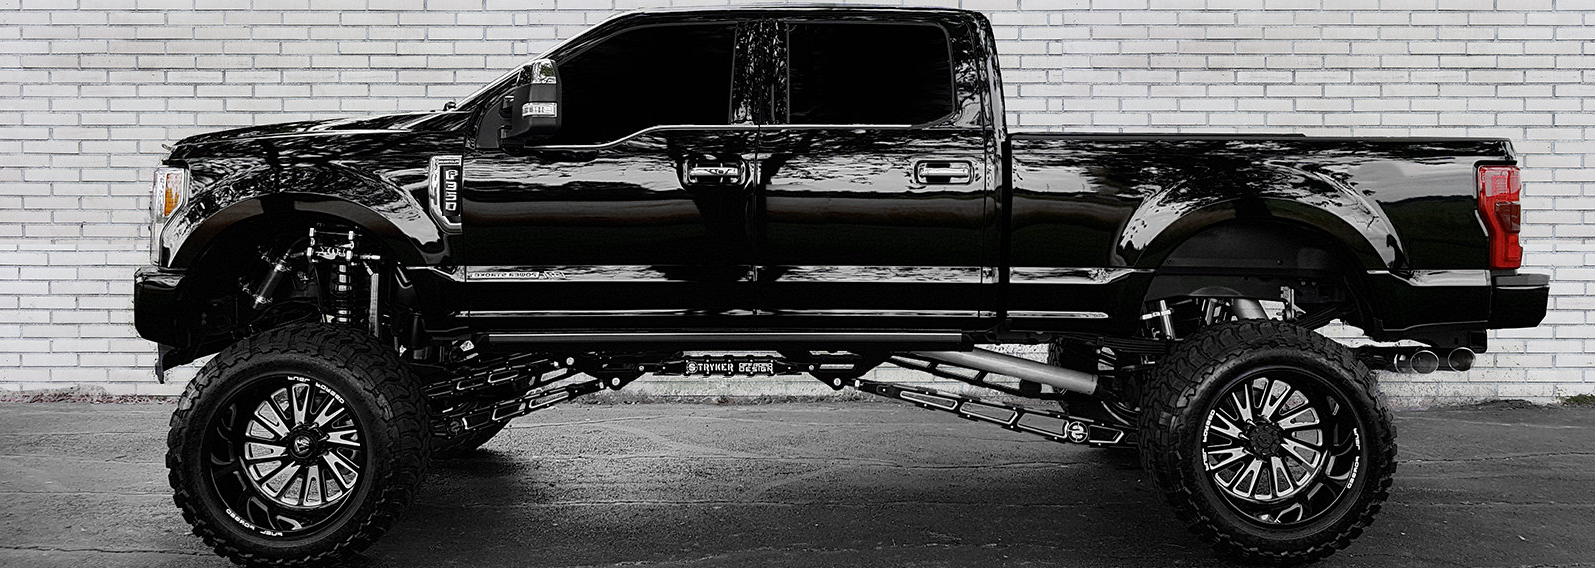 F450 7 Inch Lift with Cradle Drop